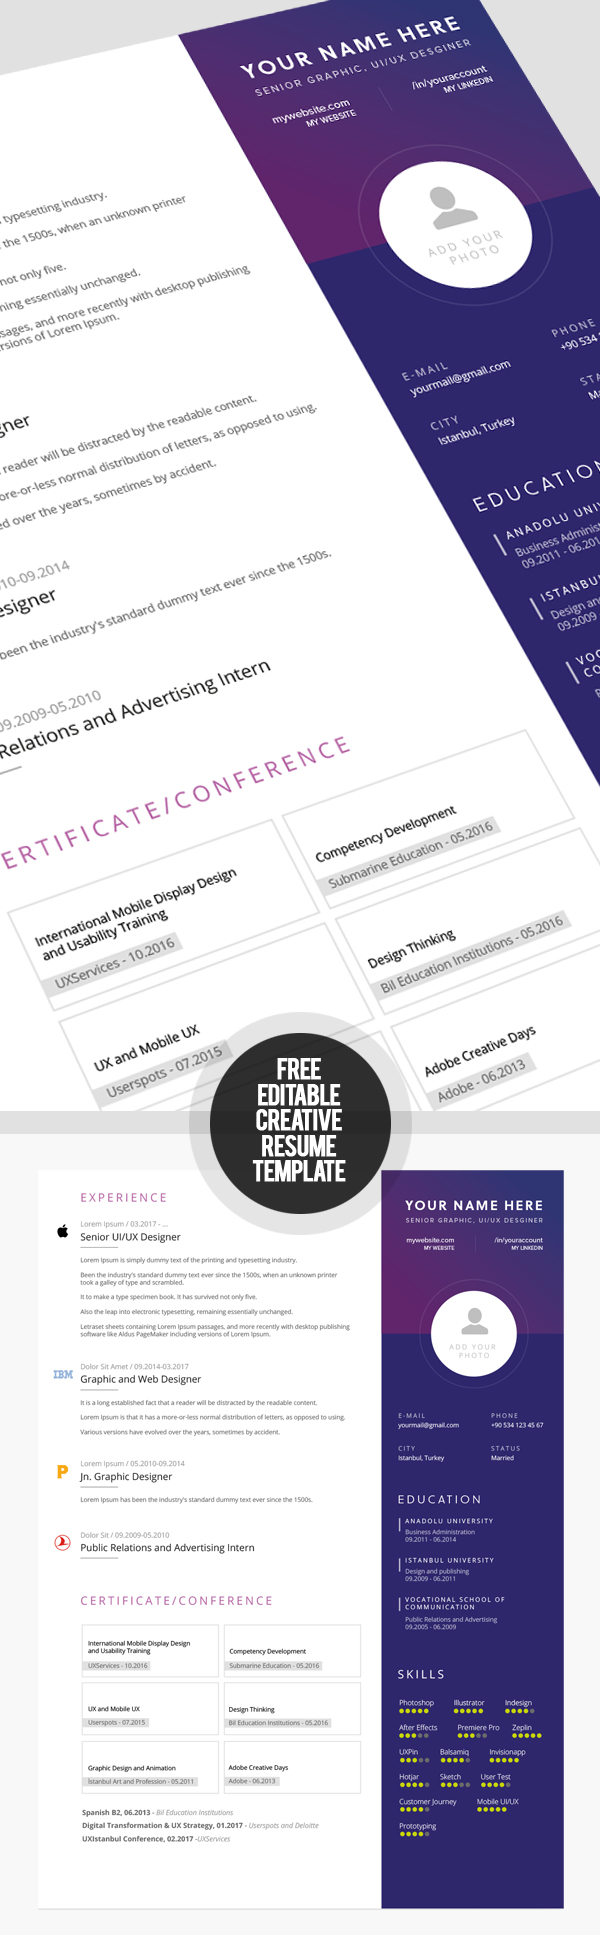 Artistic resume templates free